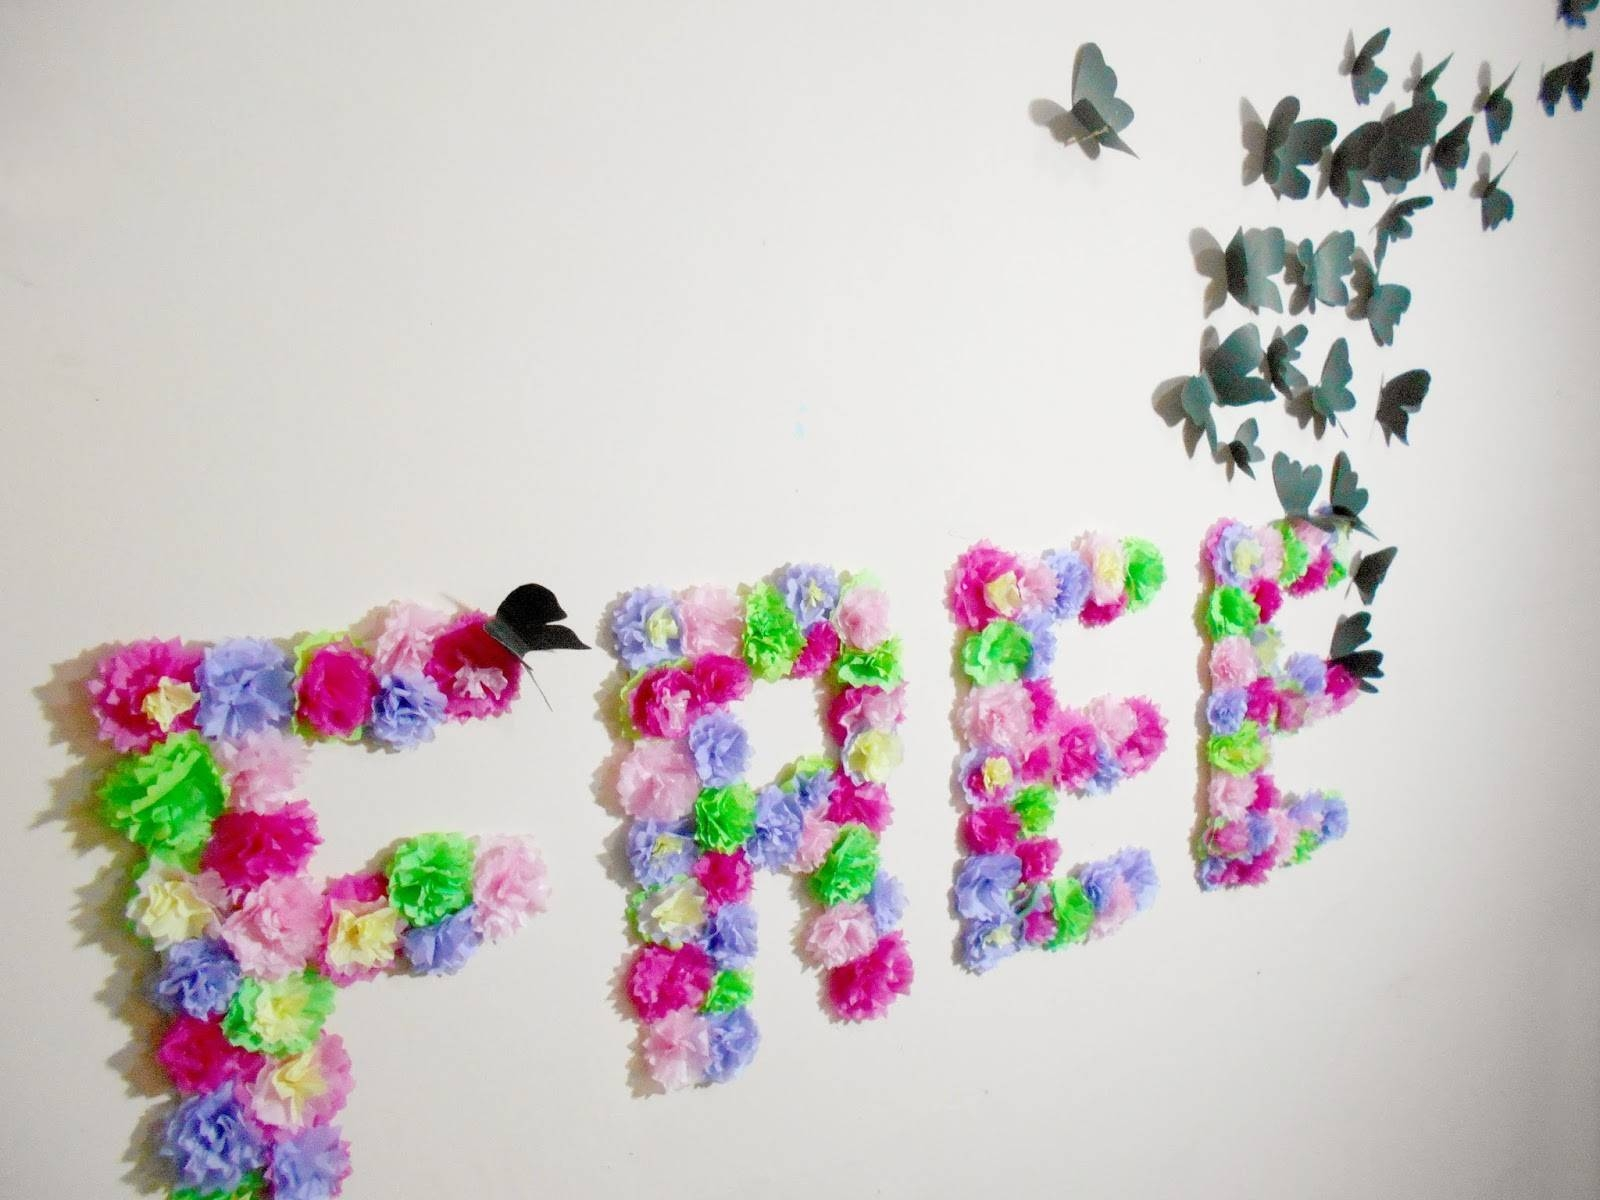 Diy Paper Flowers And Butterflies Wall Art | Room Decoration Idea With Regard To Newest Ceramic Butterfly Wall Art (View 30 of 30)